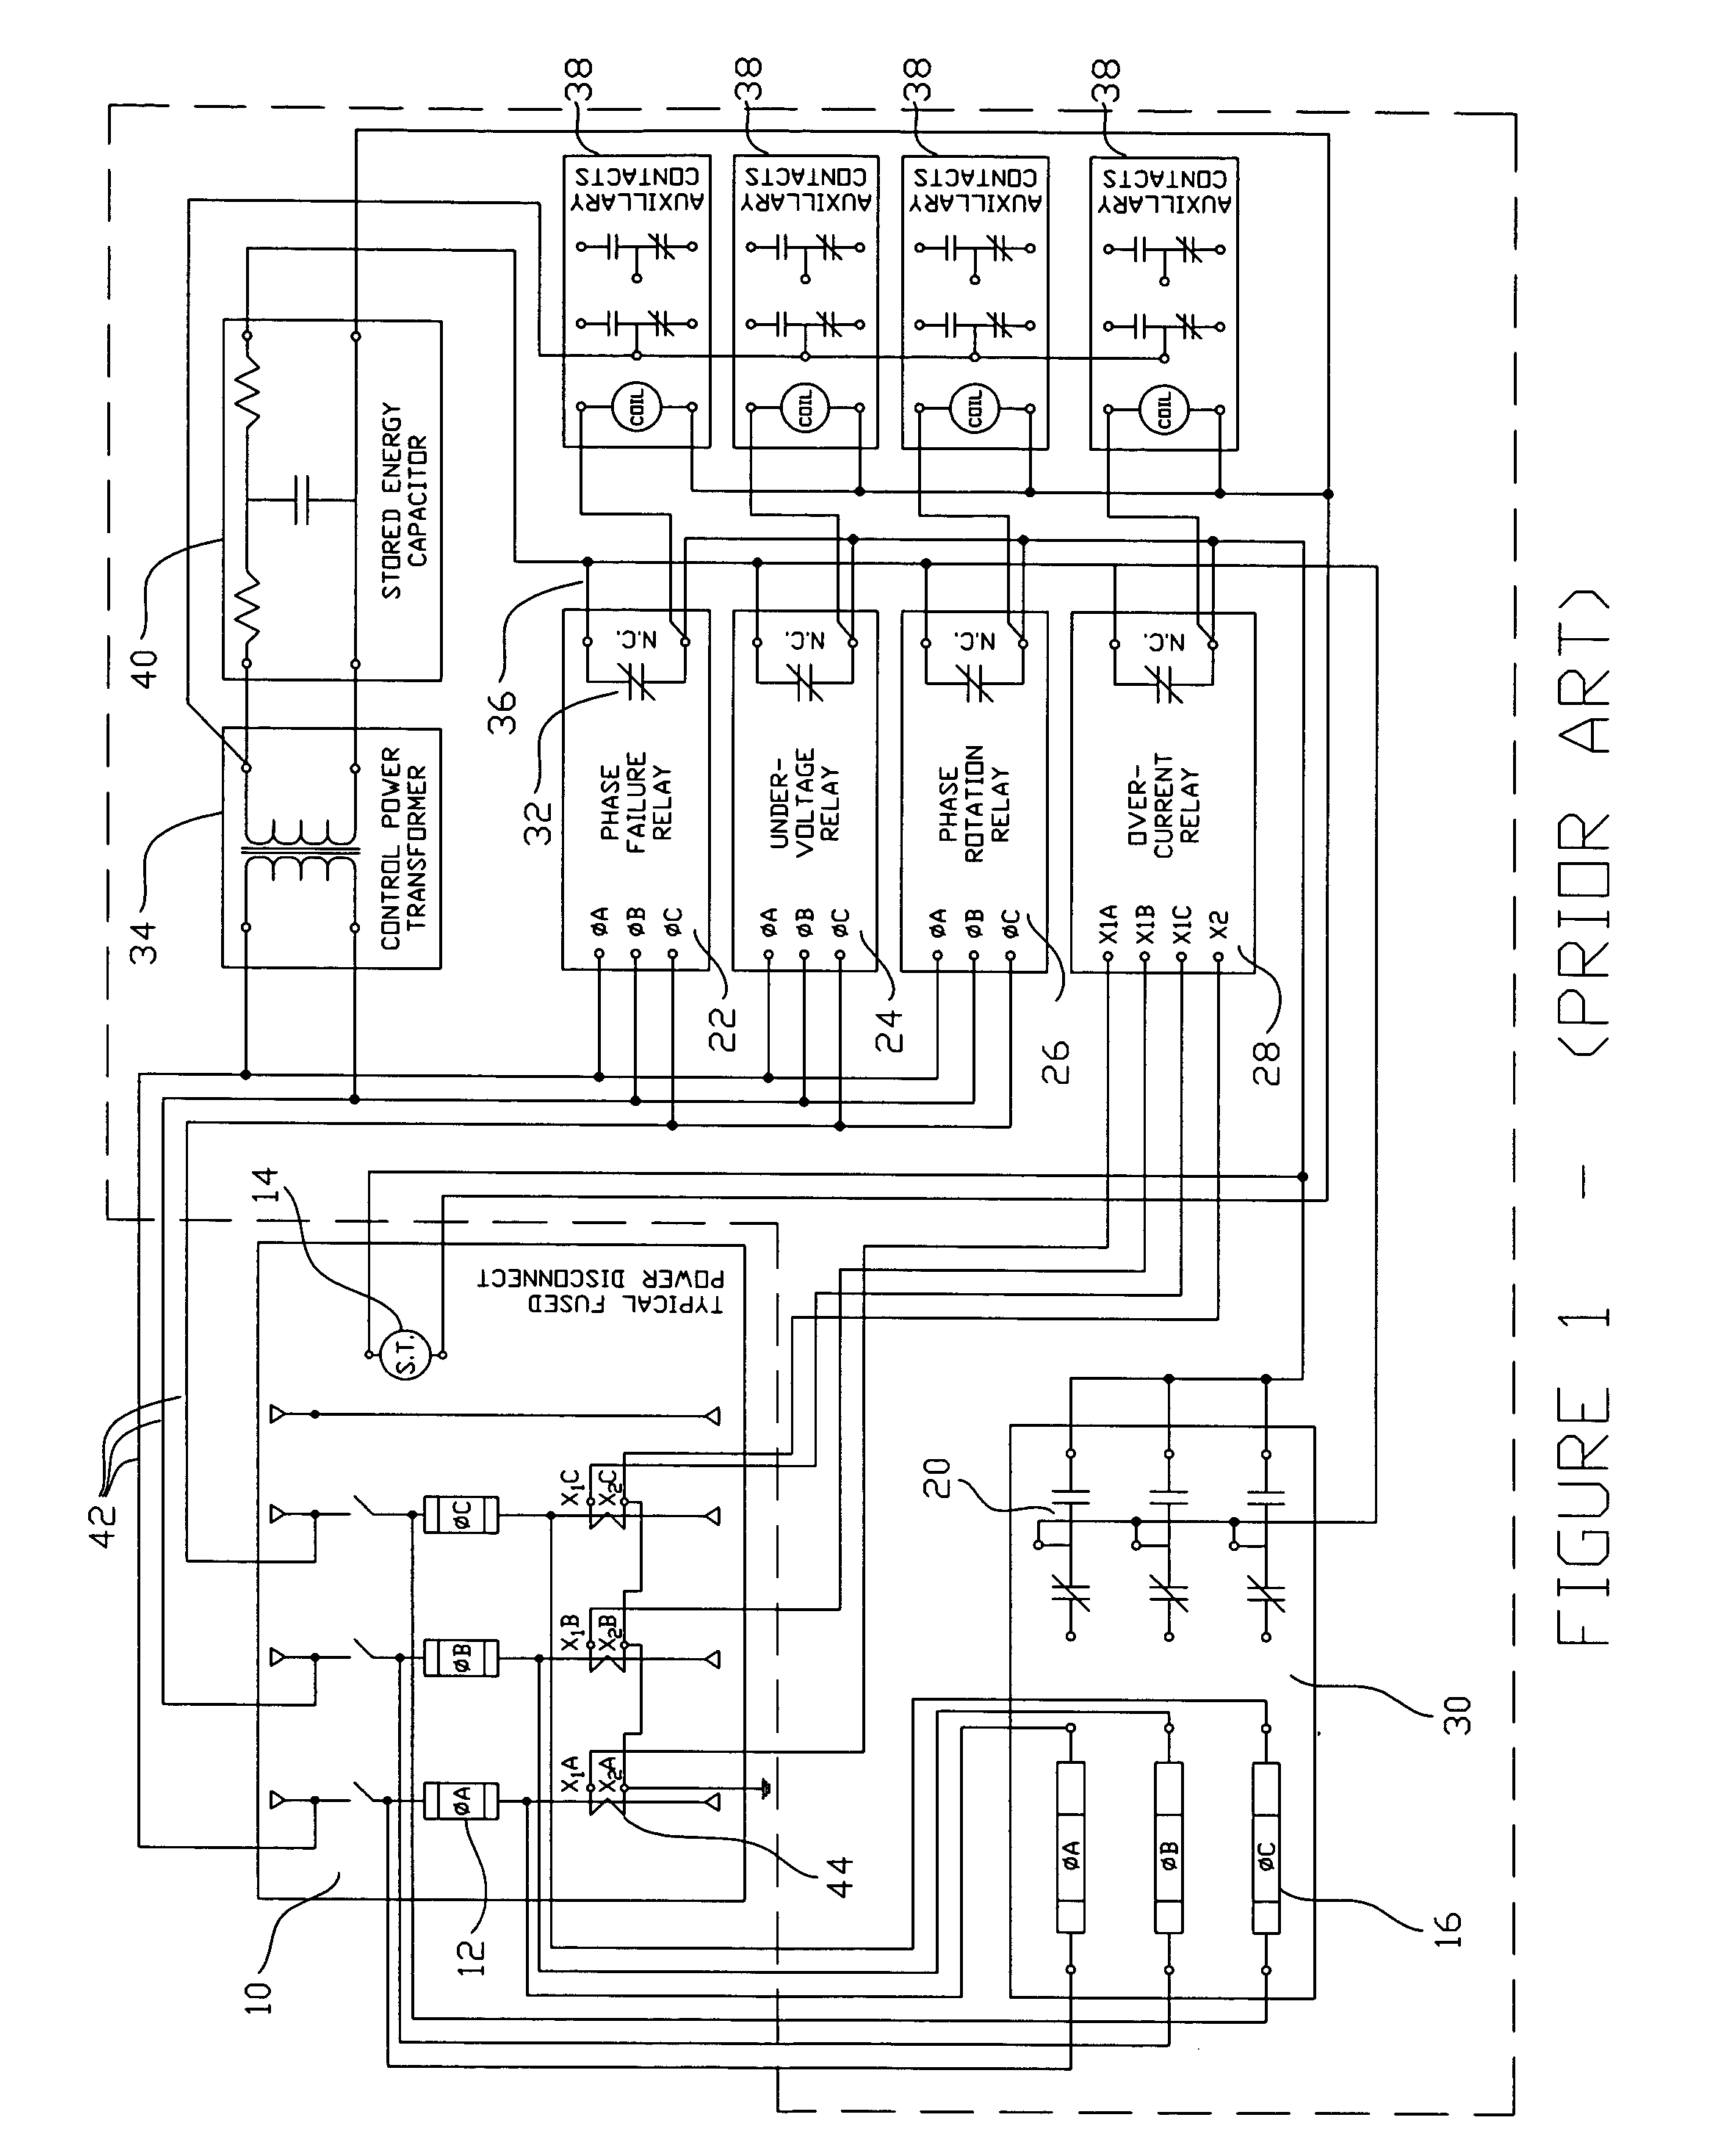 shunt trip wiring diagram square d solidfonts ge shunt trip circuit breaker wiring diagram compressor and square d